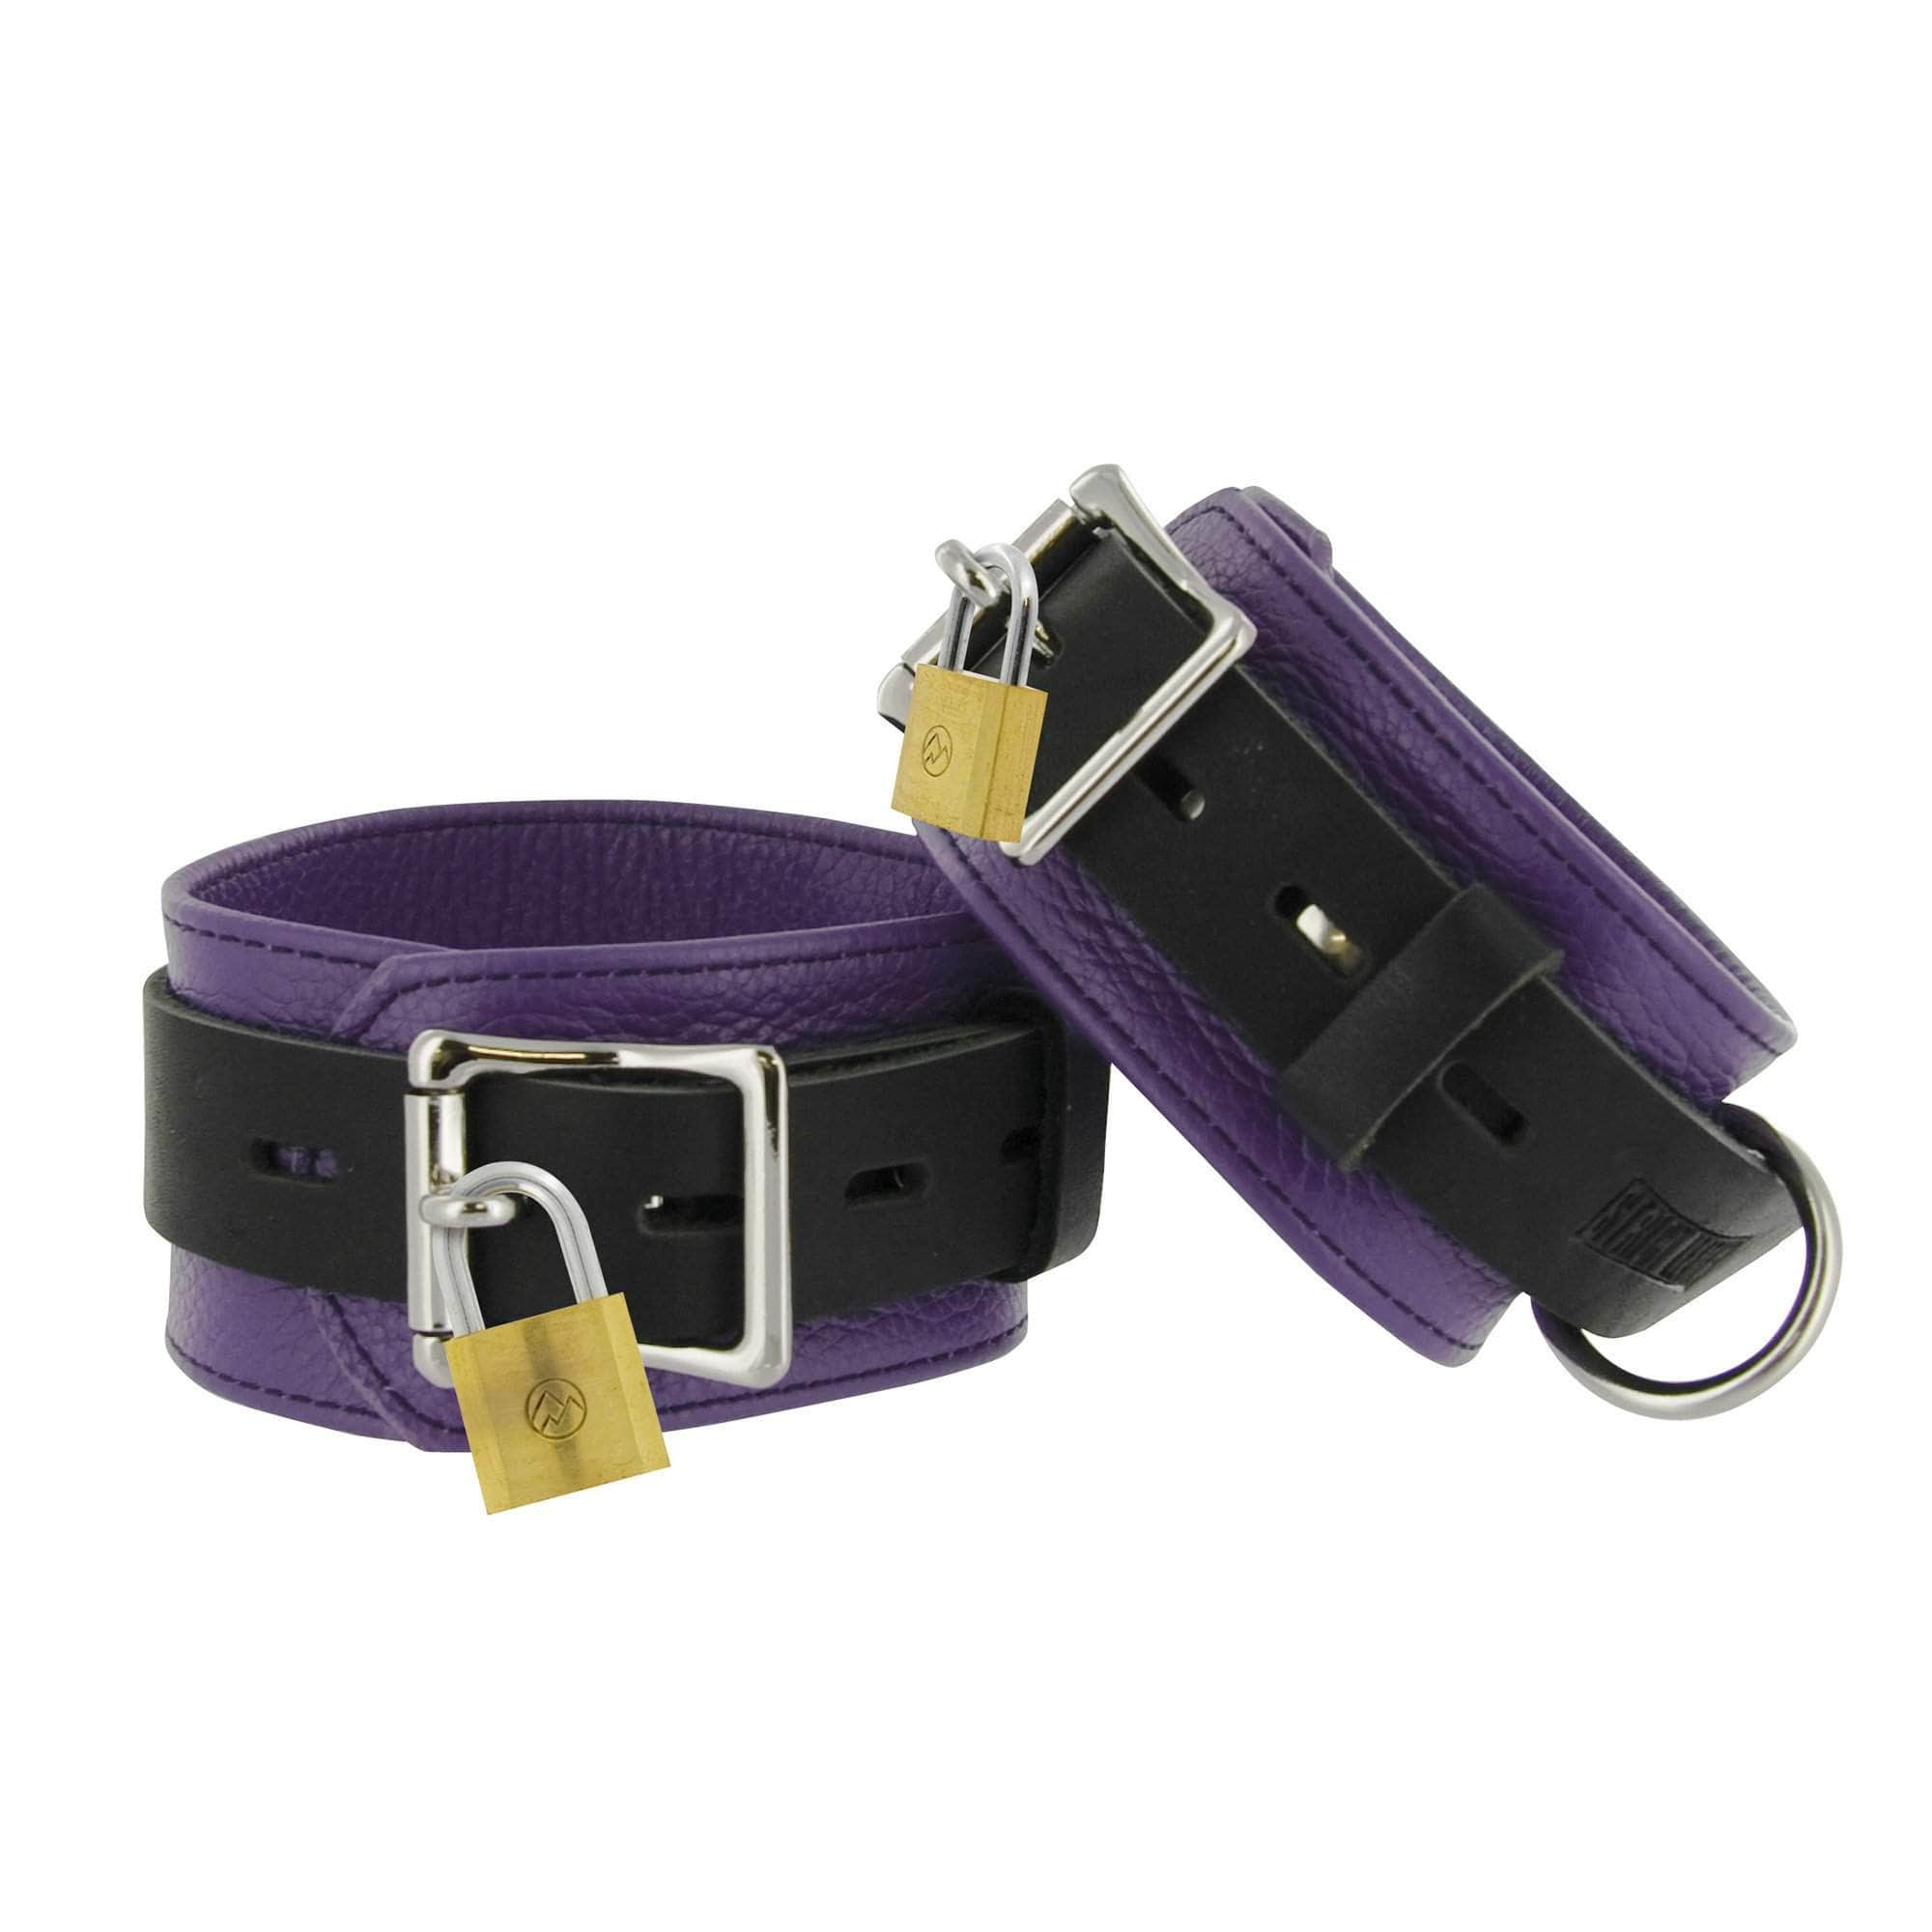 Strict Leather Purple And Black Deluxe Locking Ankle Cuffs